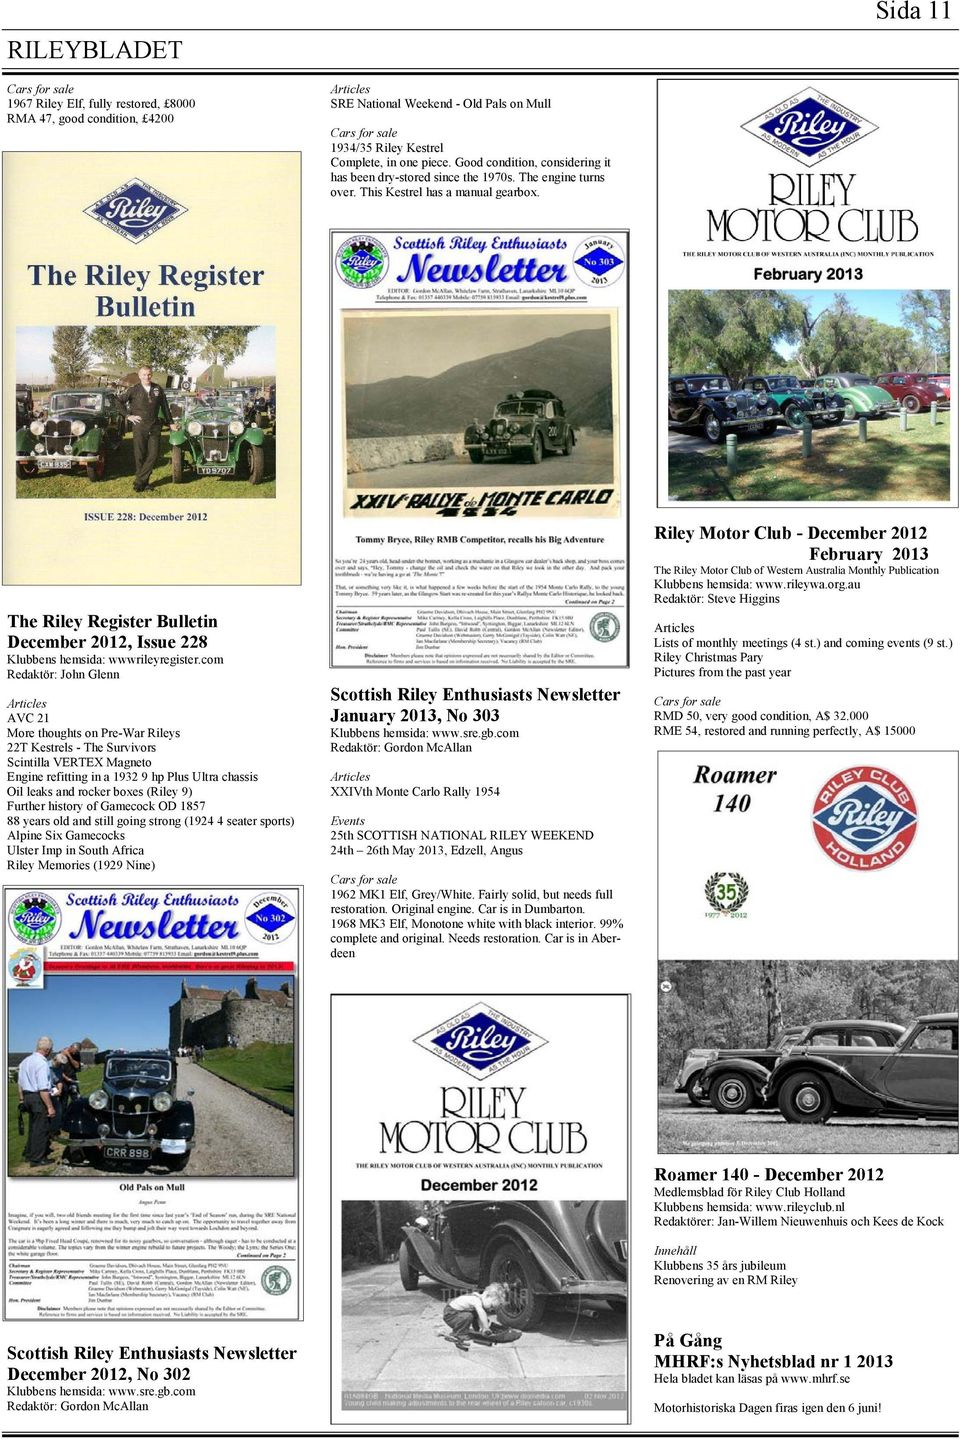 The Riley Register Bulletin December 2012, Issue 228 Klubbens hemsida: wwwrileyregister.